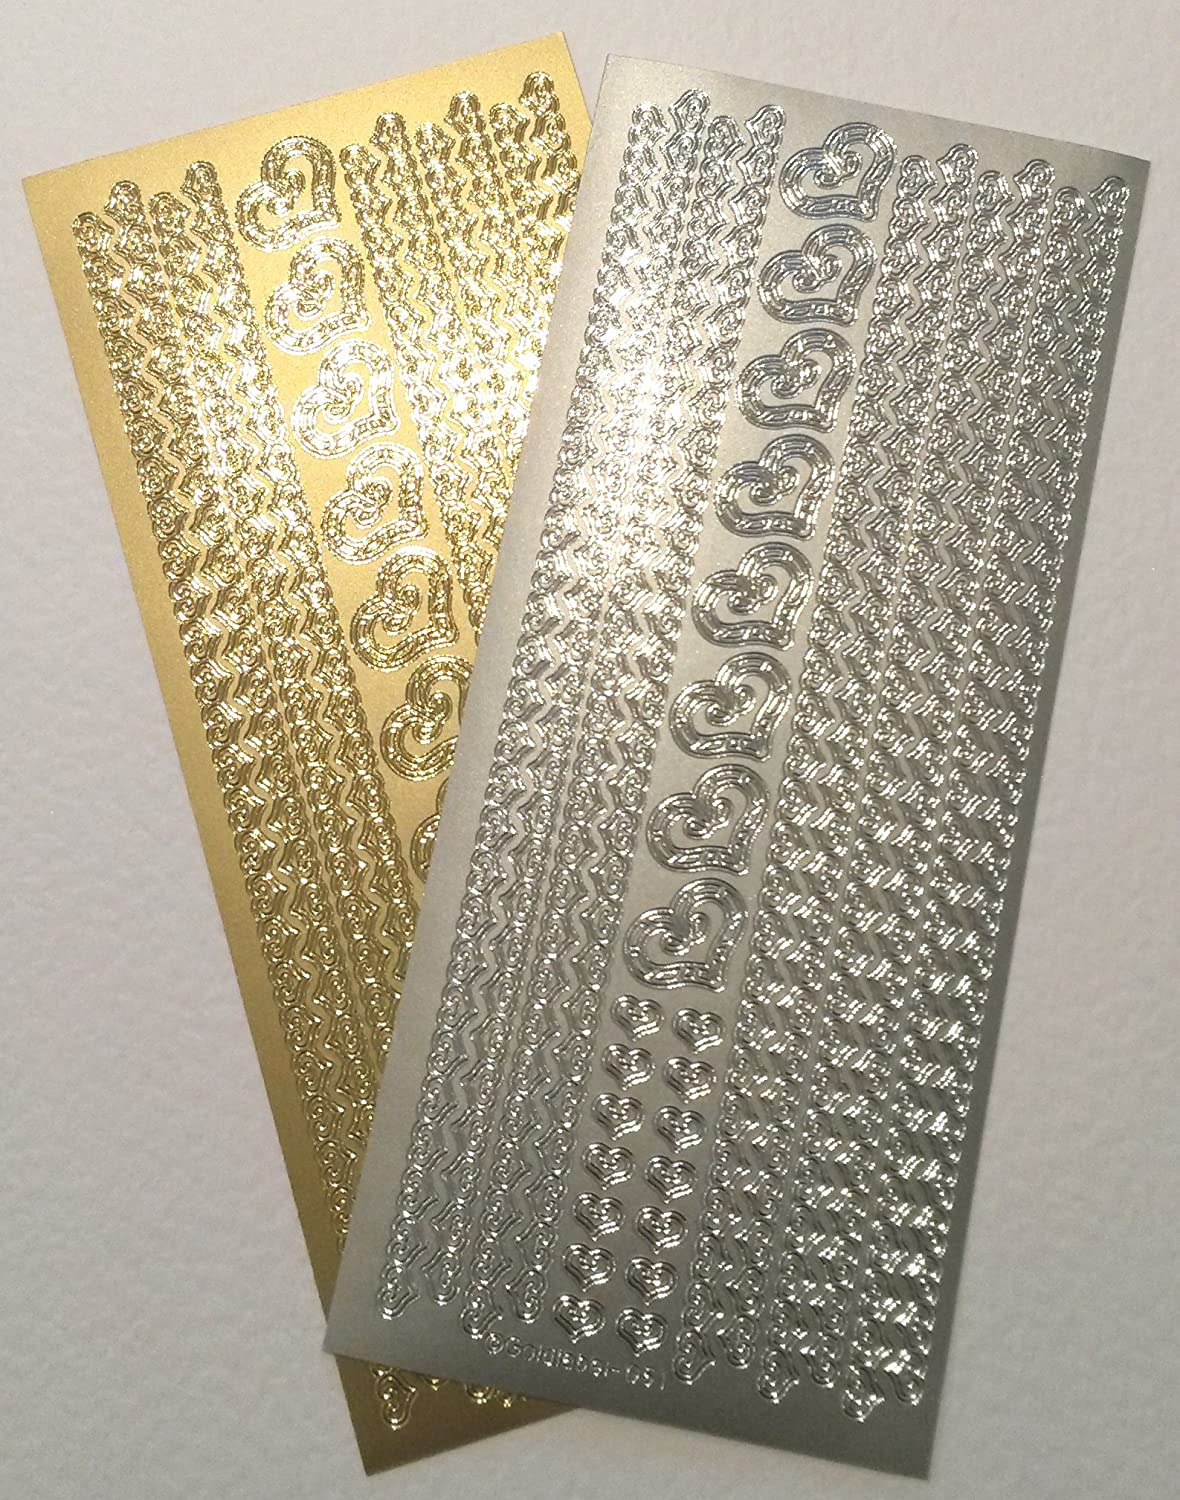 Silver Self Adhesive Borders Peel Off Stickers Sheet Card Embellishments Crafts